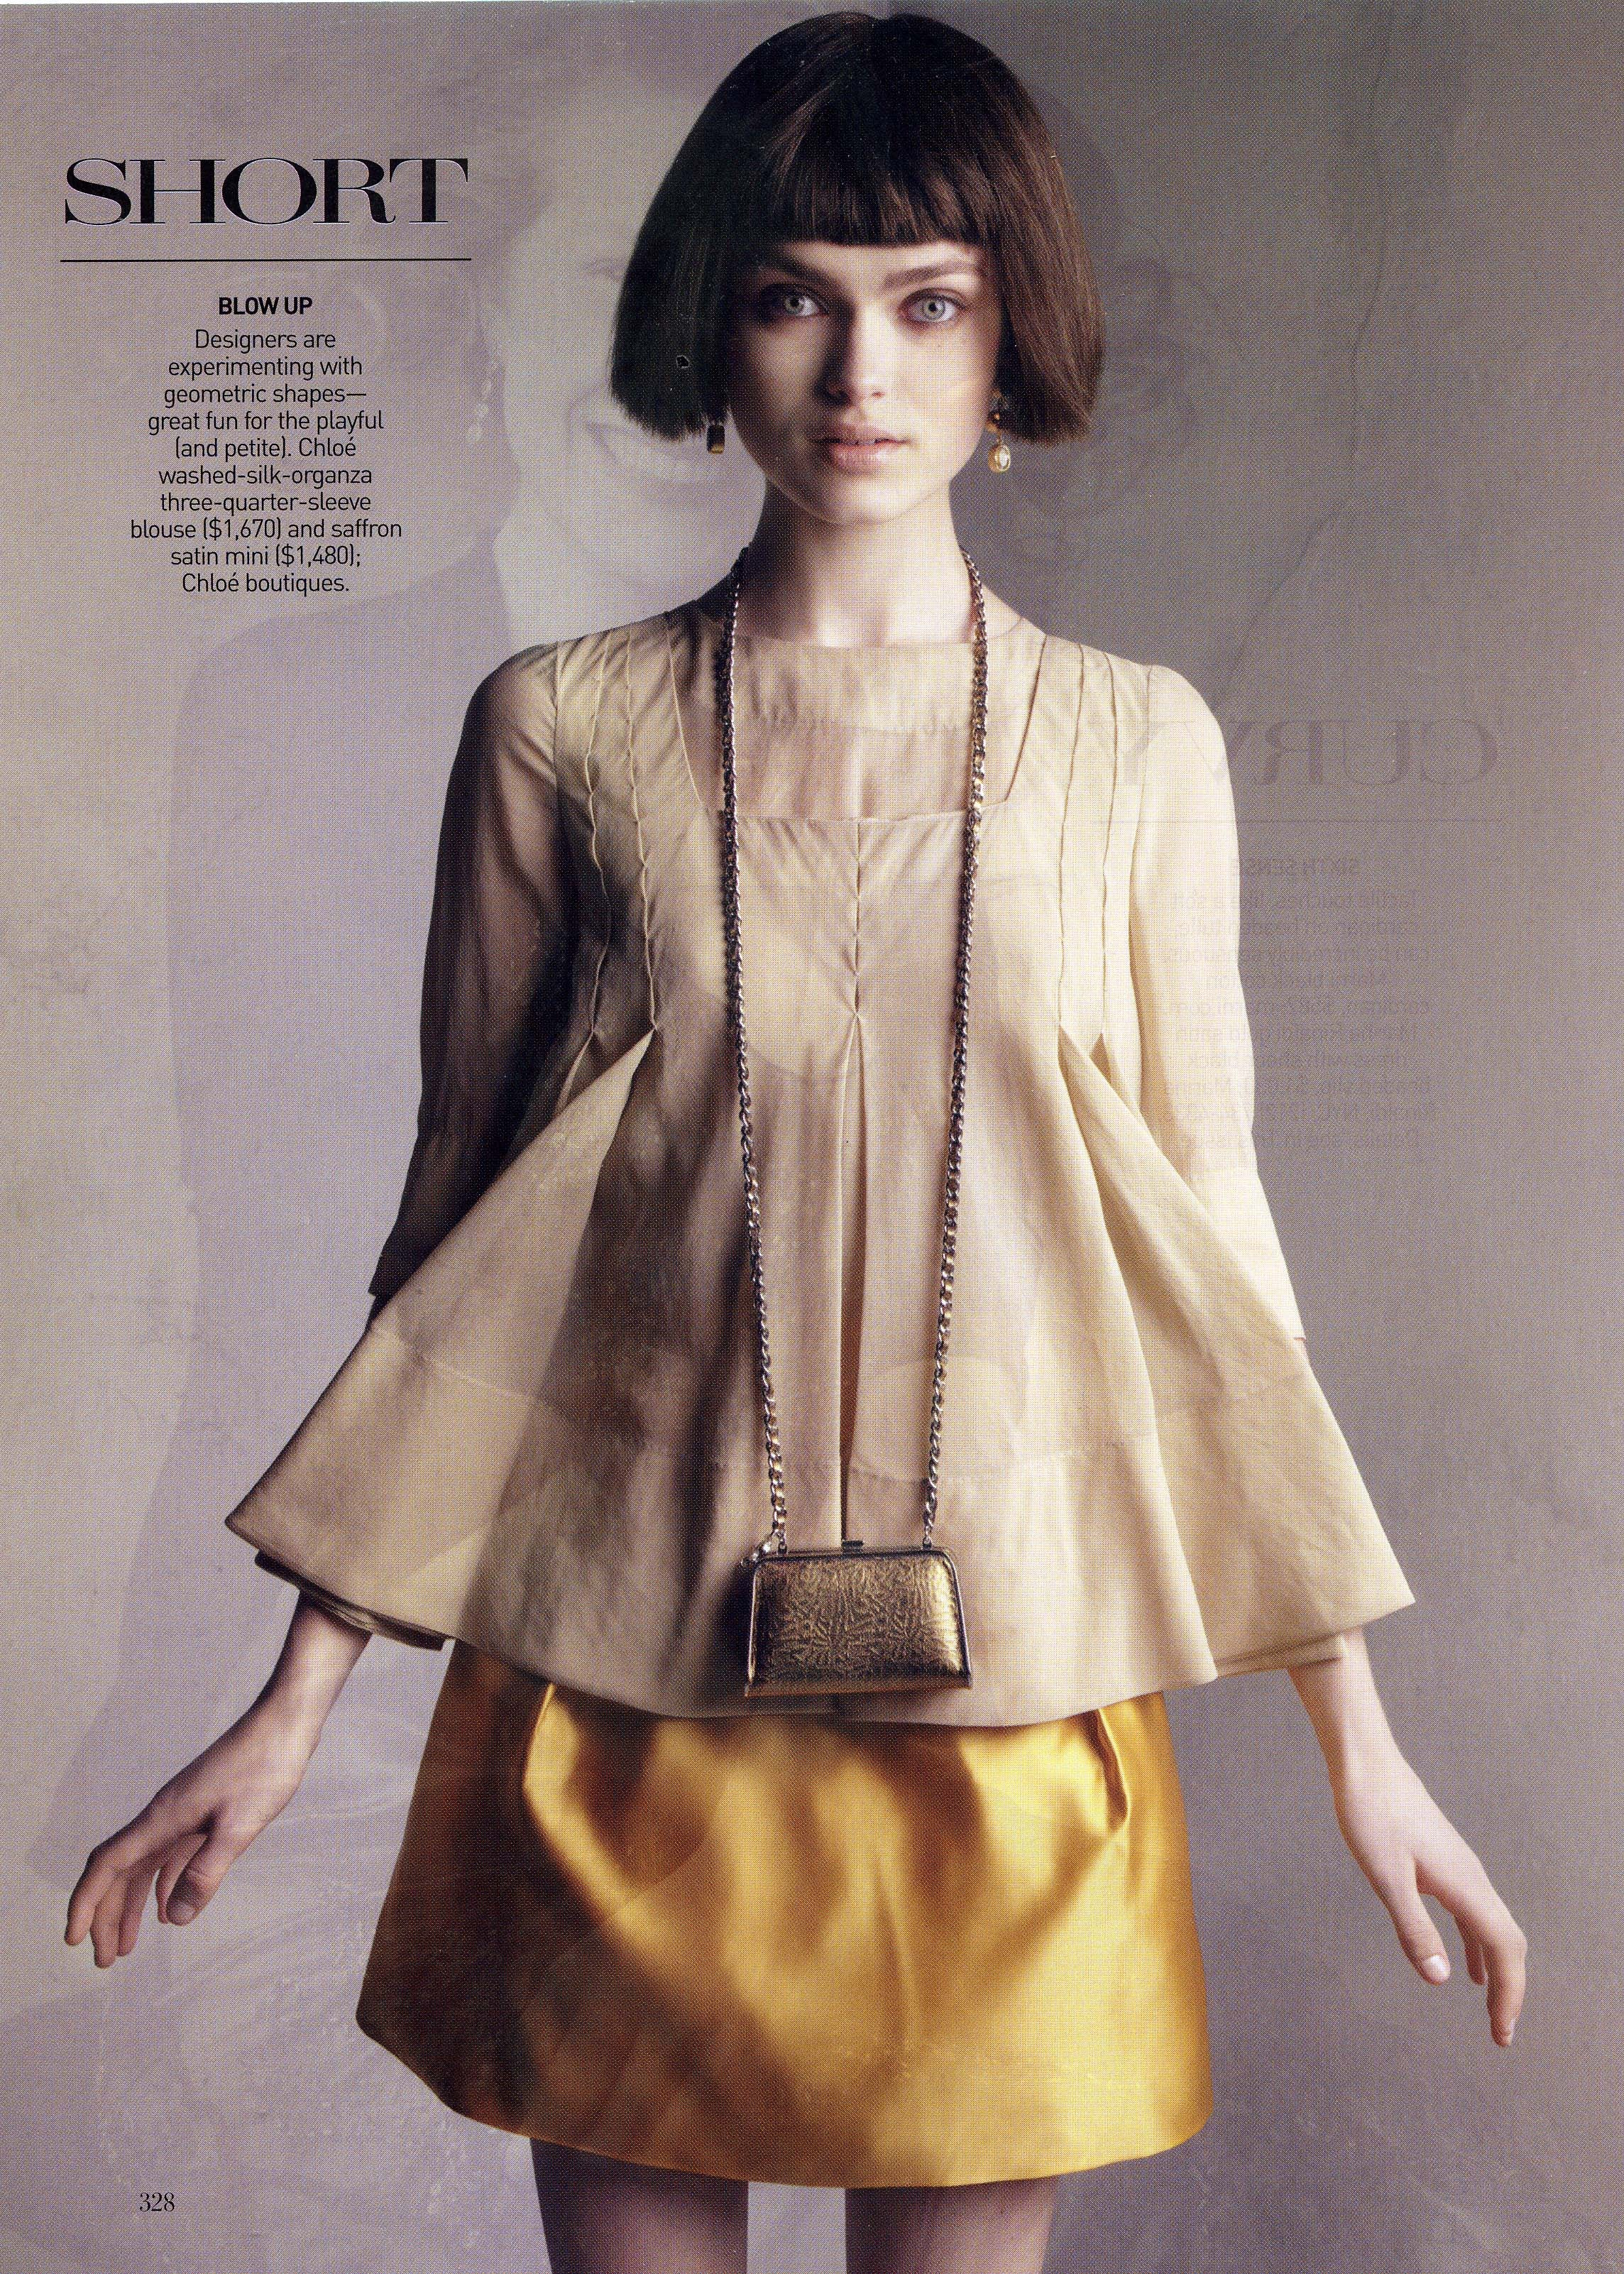 vogue april 06 int.jpg